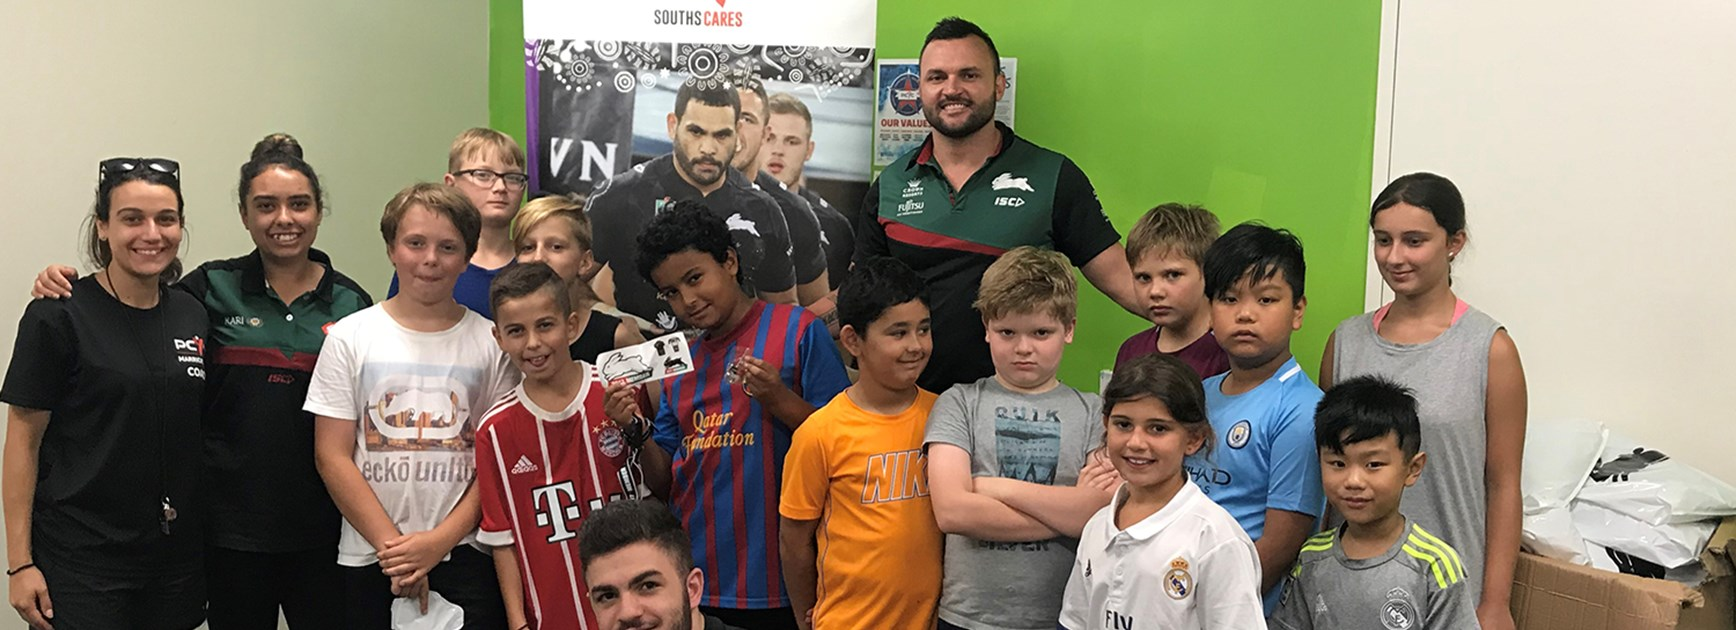 Marrickville PCYC get visit from Champion